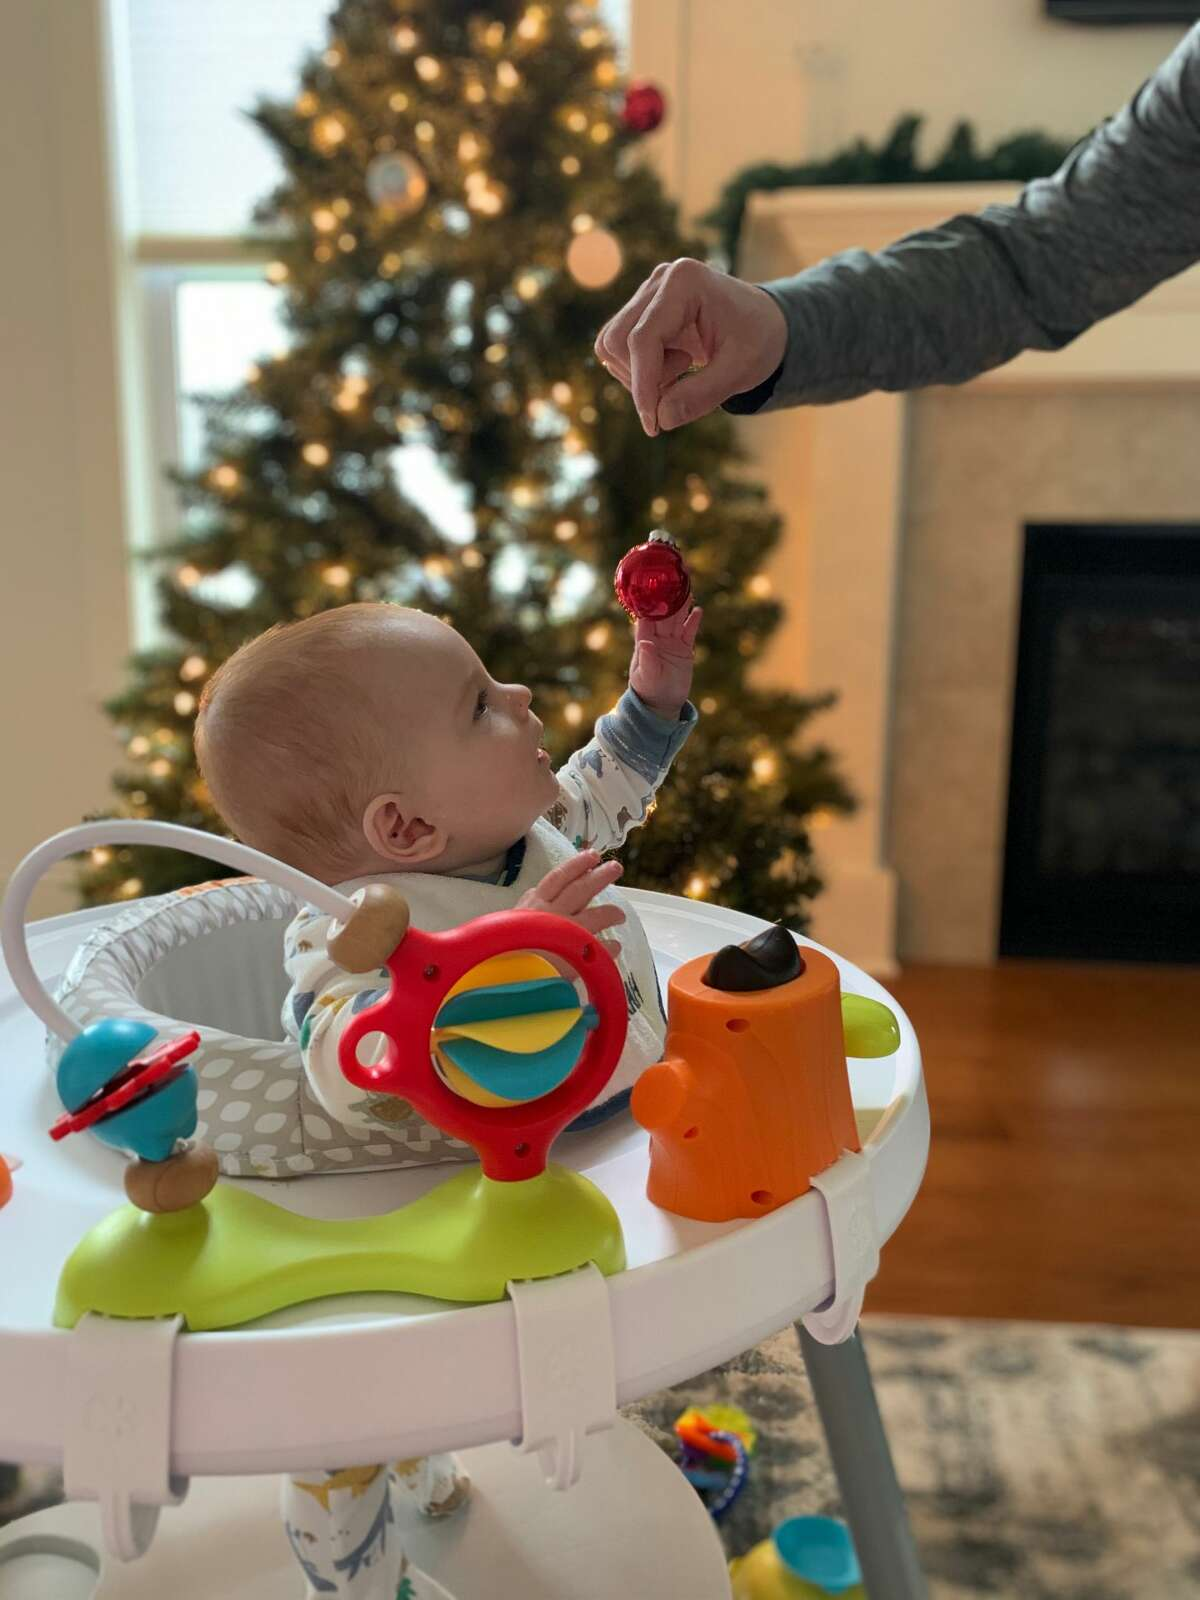 Giovanni Lomaestro, seven-months-old, experiencing Christmas for the first time. He was very intrigued by the Christmas bulb as the family decorated their tree a few weeks ago, says his father, Matt , of Guilderland